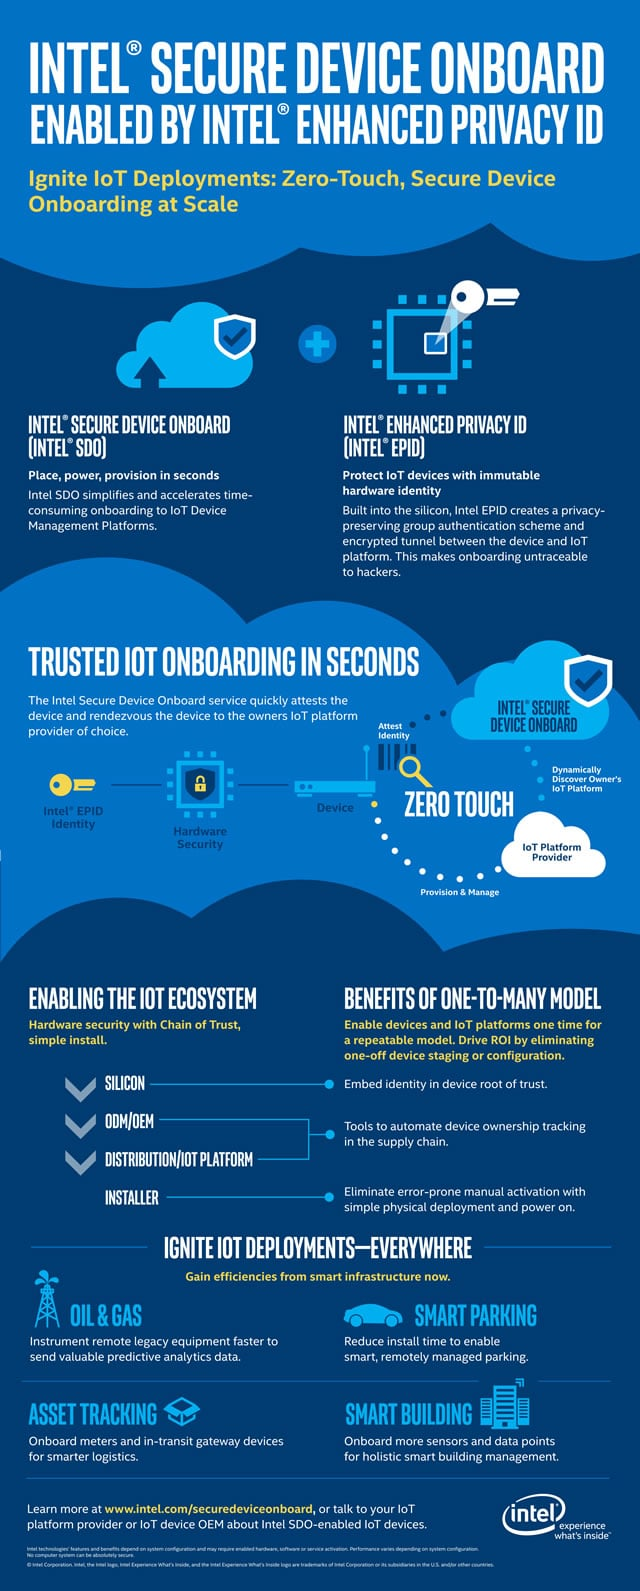 Intel Secure Device Onboard or Intel SDO for faster and secure IoT device onboarding at scale visually explained